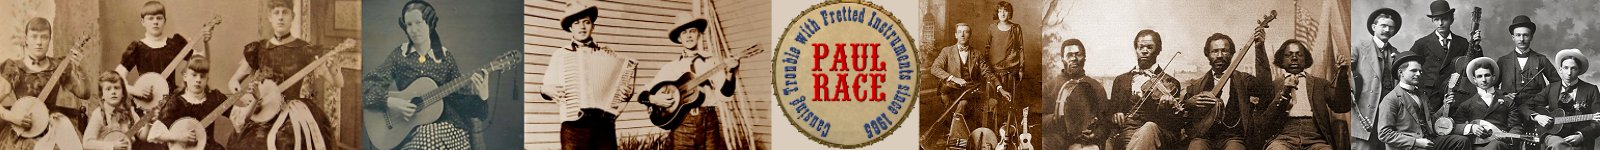 Paul Race Music